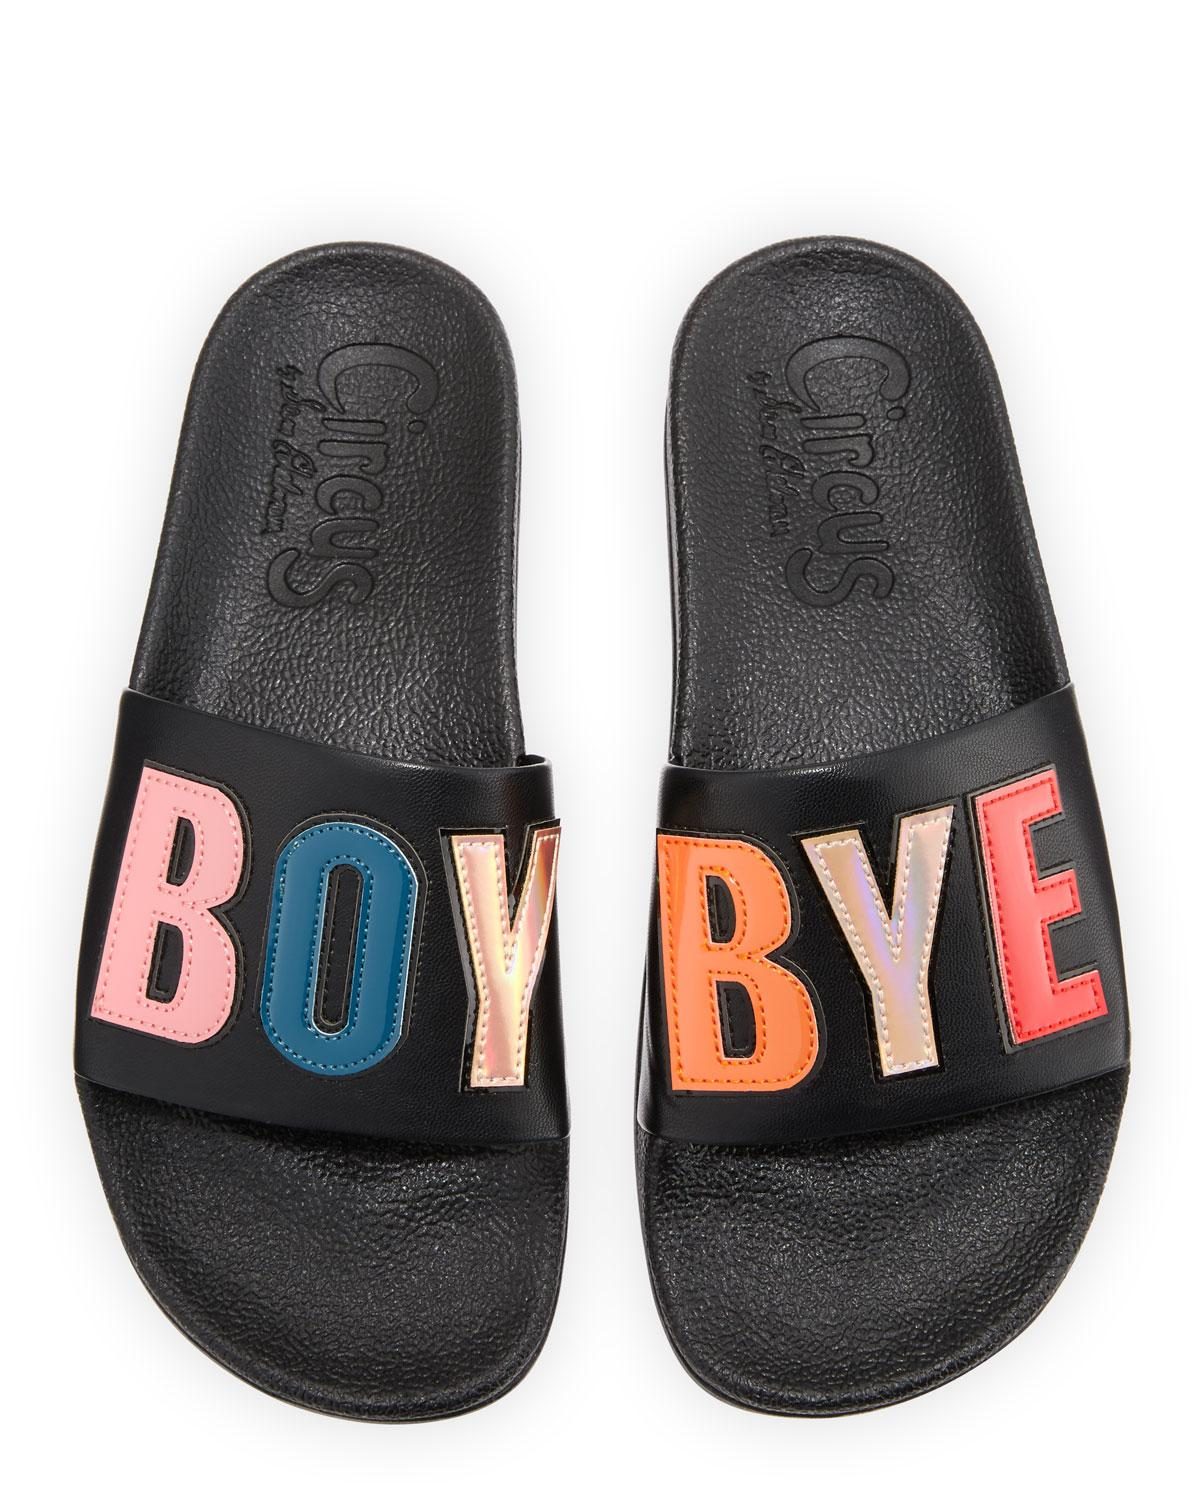 new products official best place Flynn Boy Bye Pool Sandal